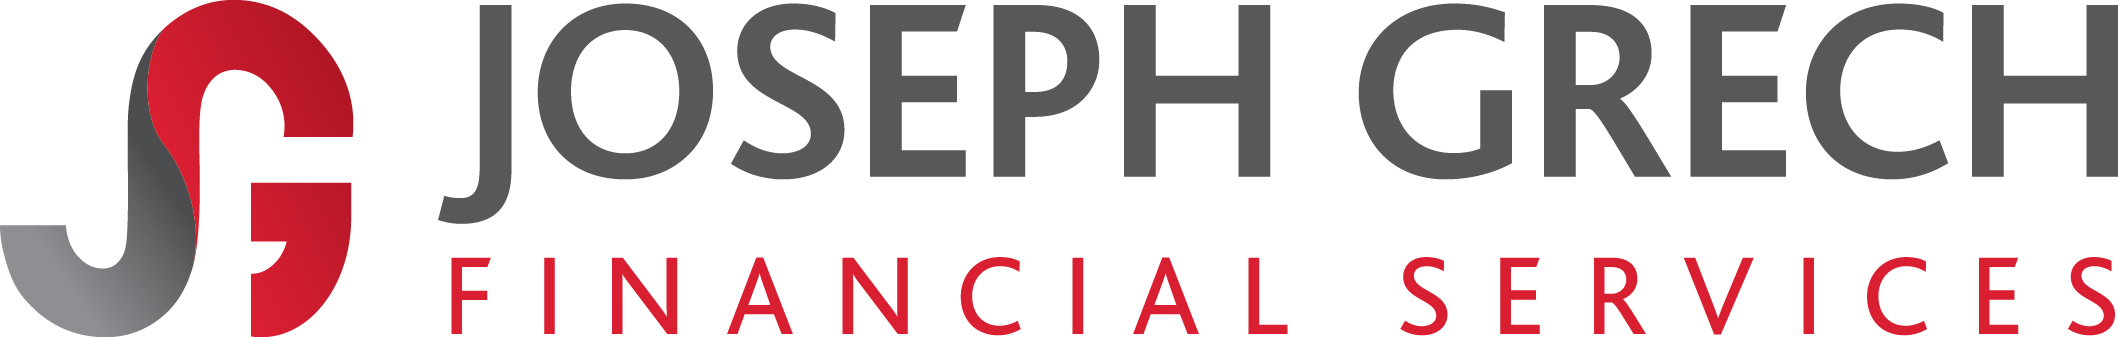 Joseph Grech Financial Services